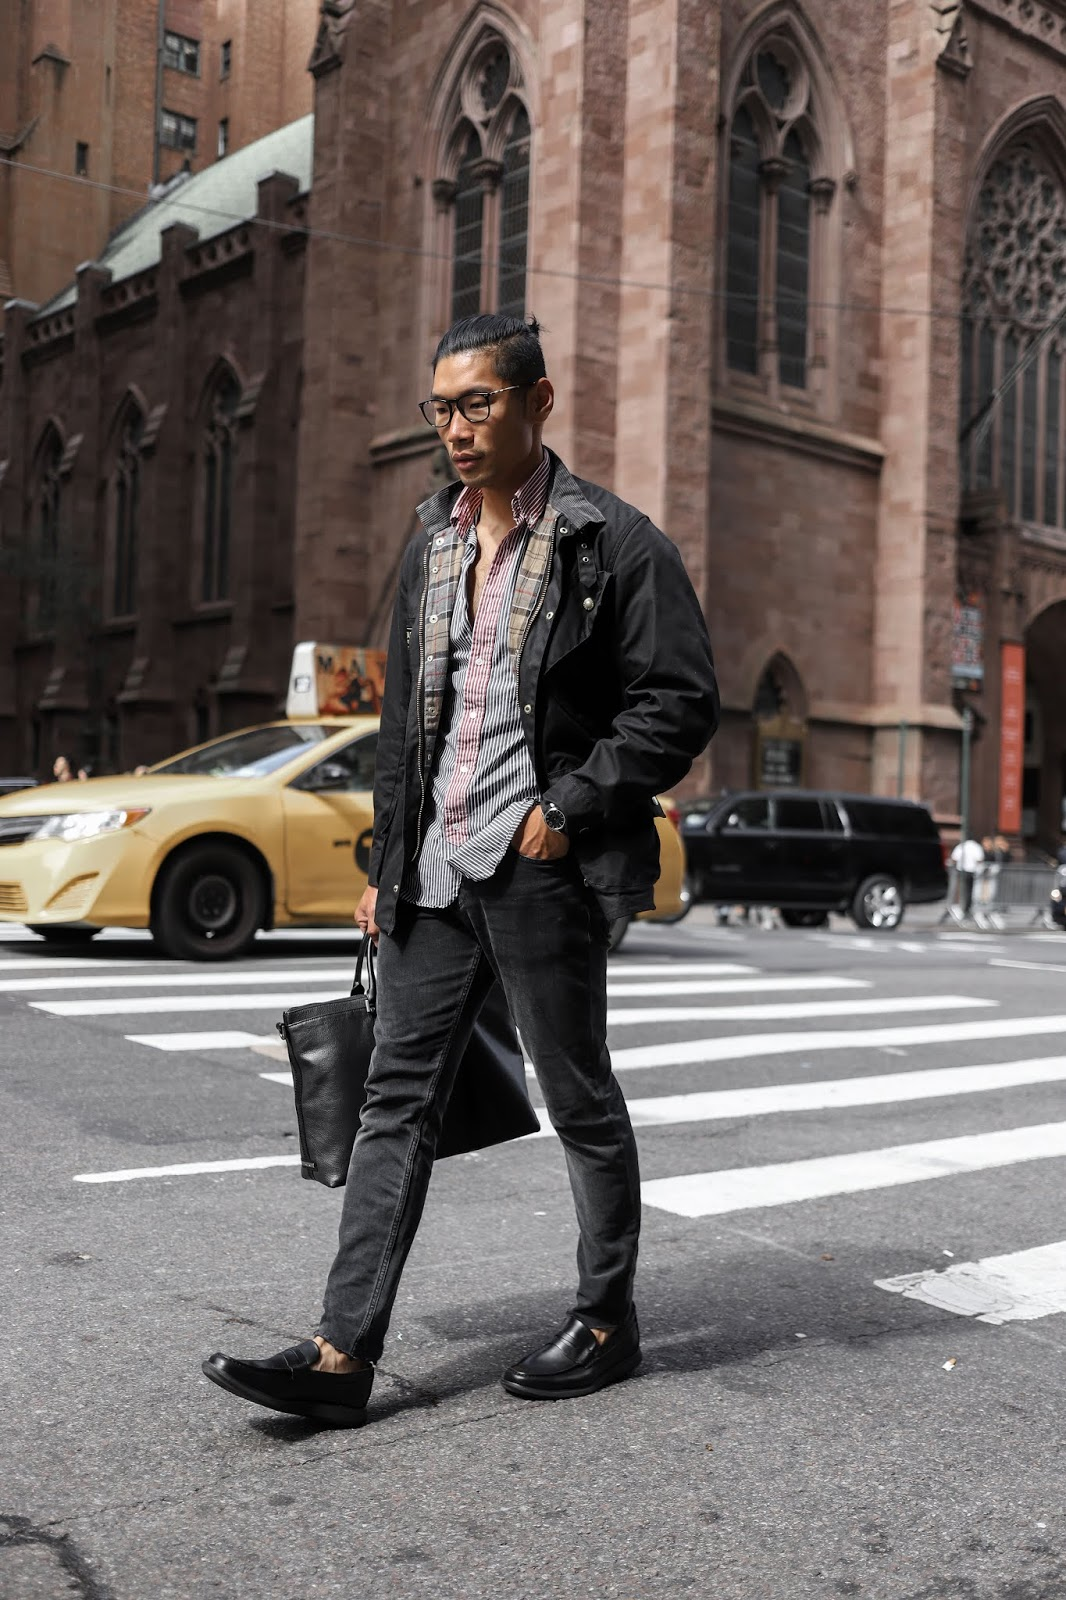 c4fa56a774 Menswear Blogger and Influencer wearing Sperry Loafers in City Prep Fall  Style Look ...